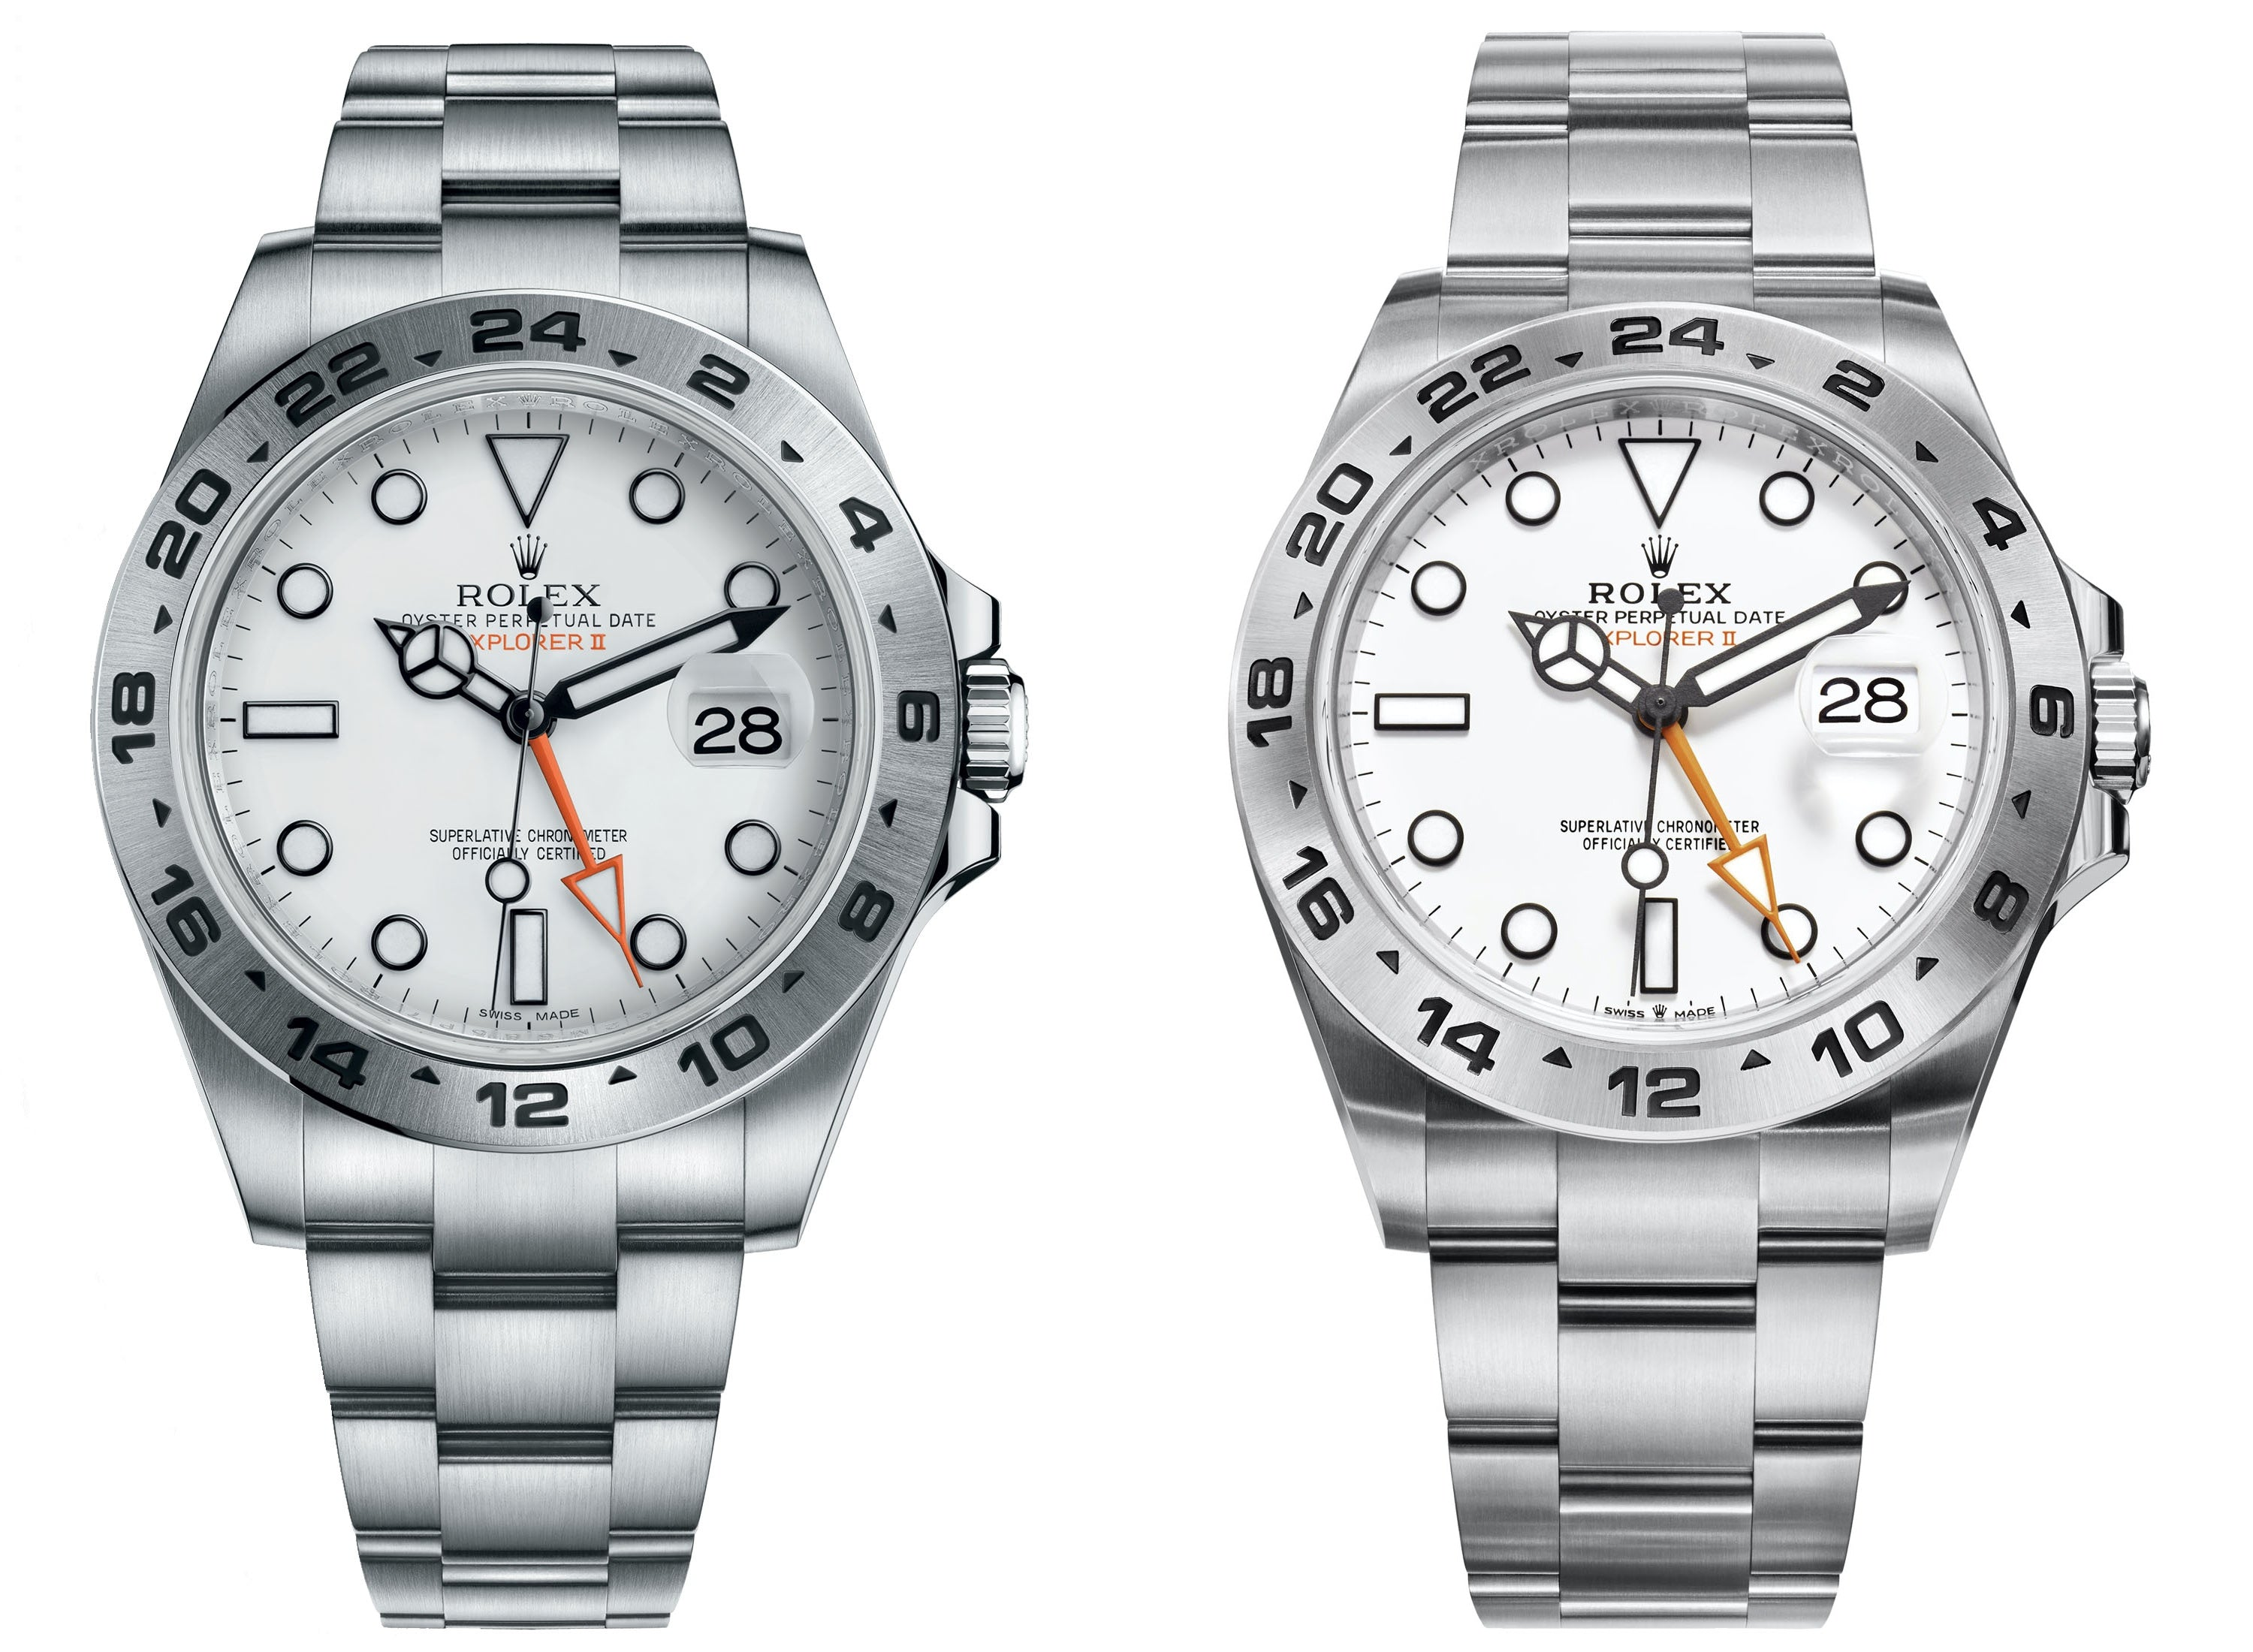 rolex explorers 216570 and 226570 side by side